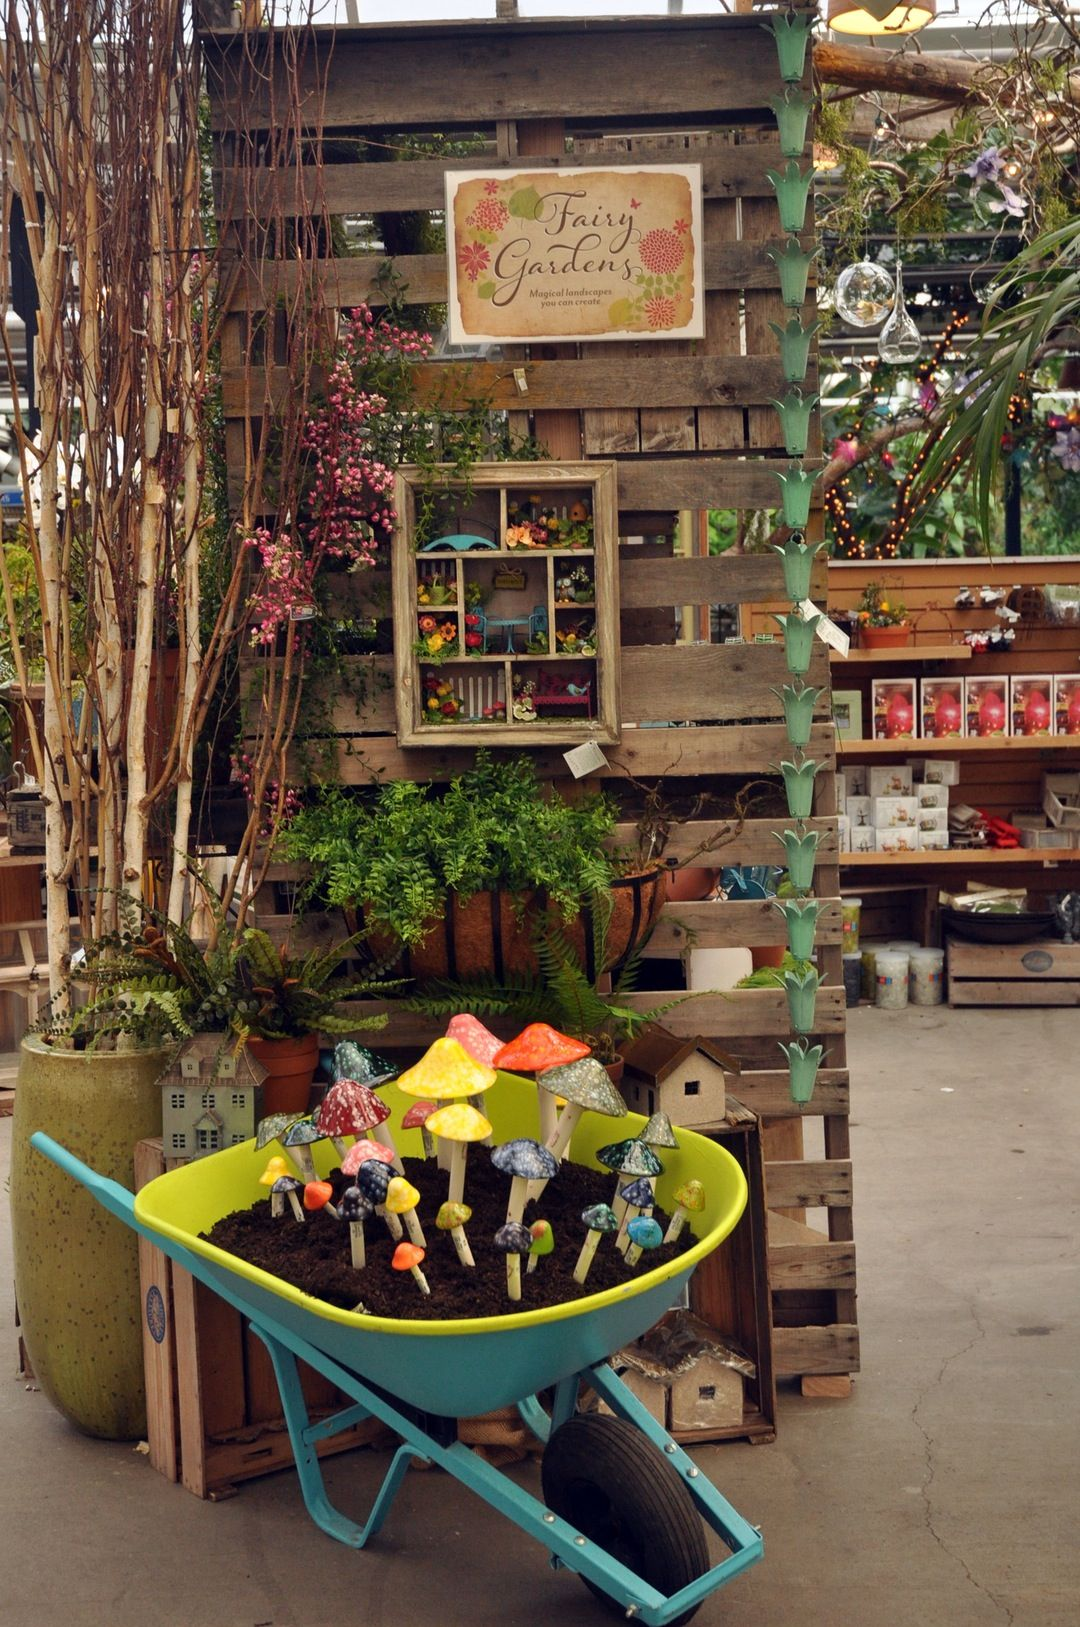 Build A Beautiful Organic Garden With These Tips -- Visit the image ...